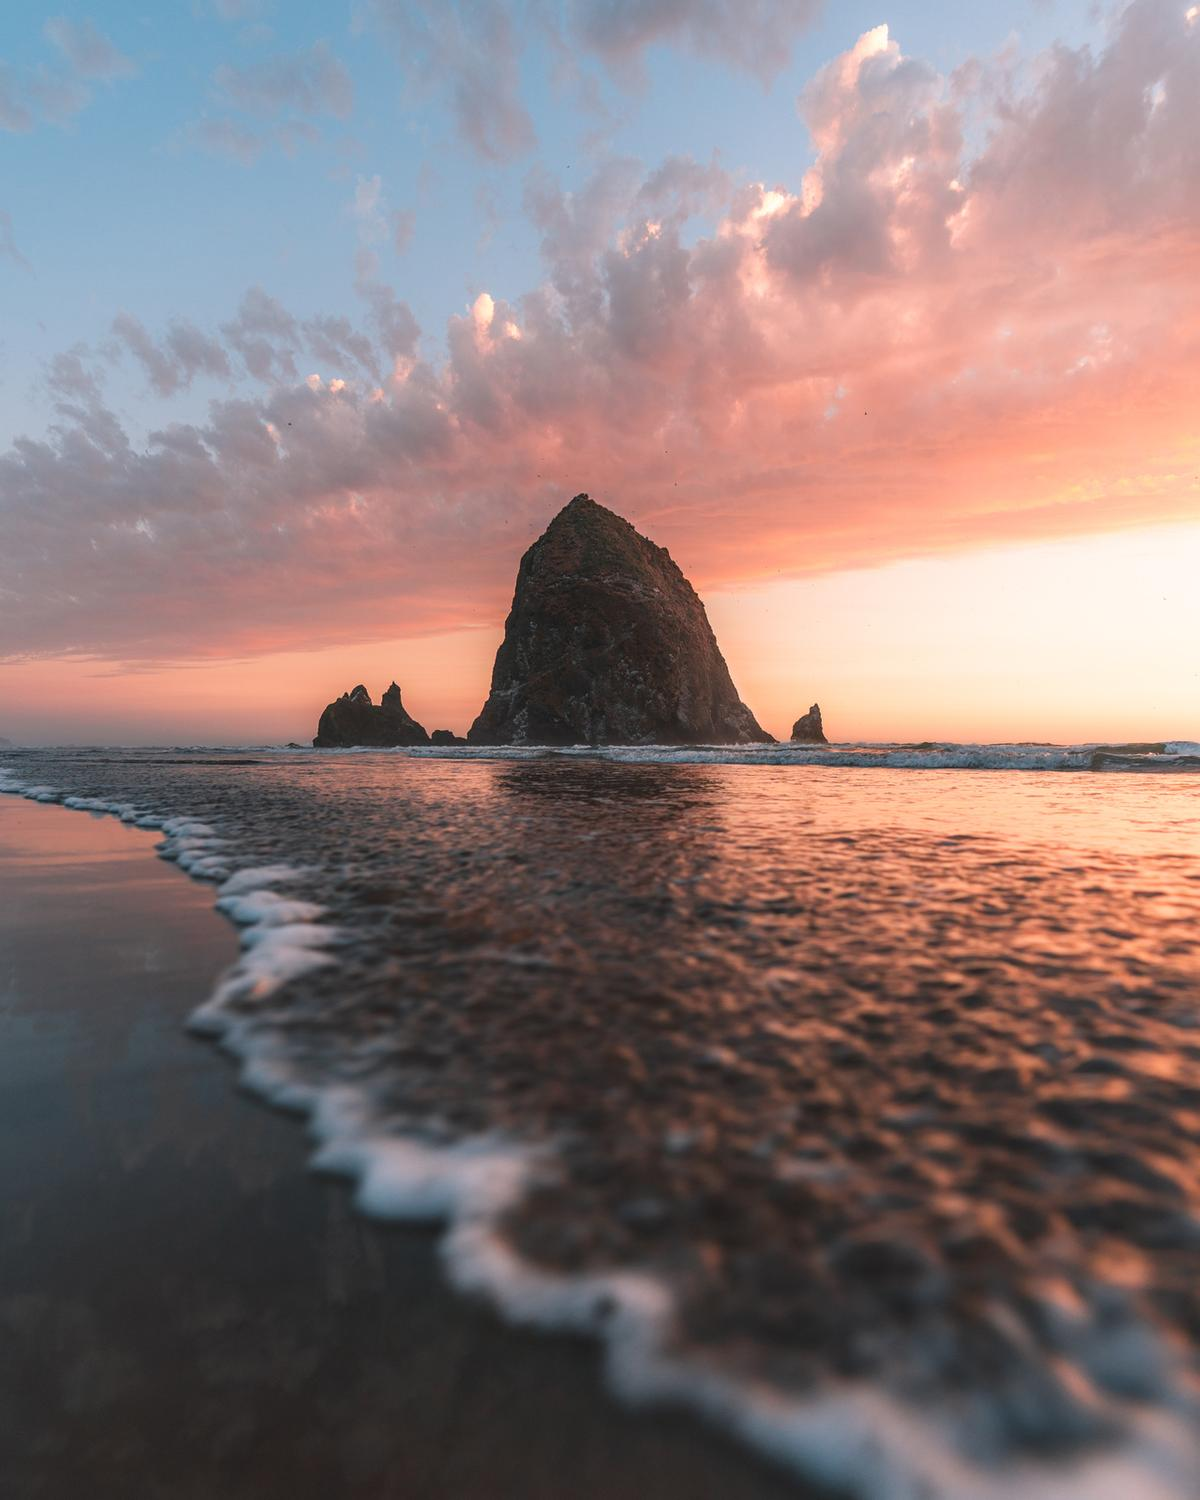 Capturing a wave in front of Haystack Rock